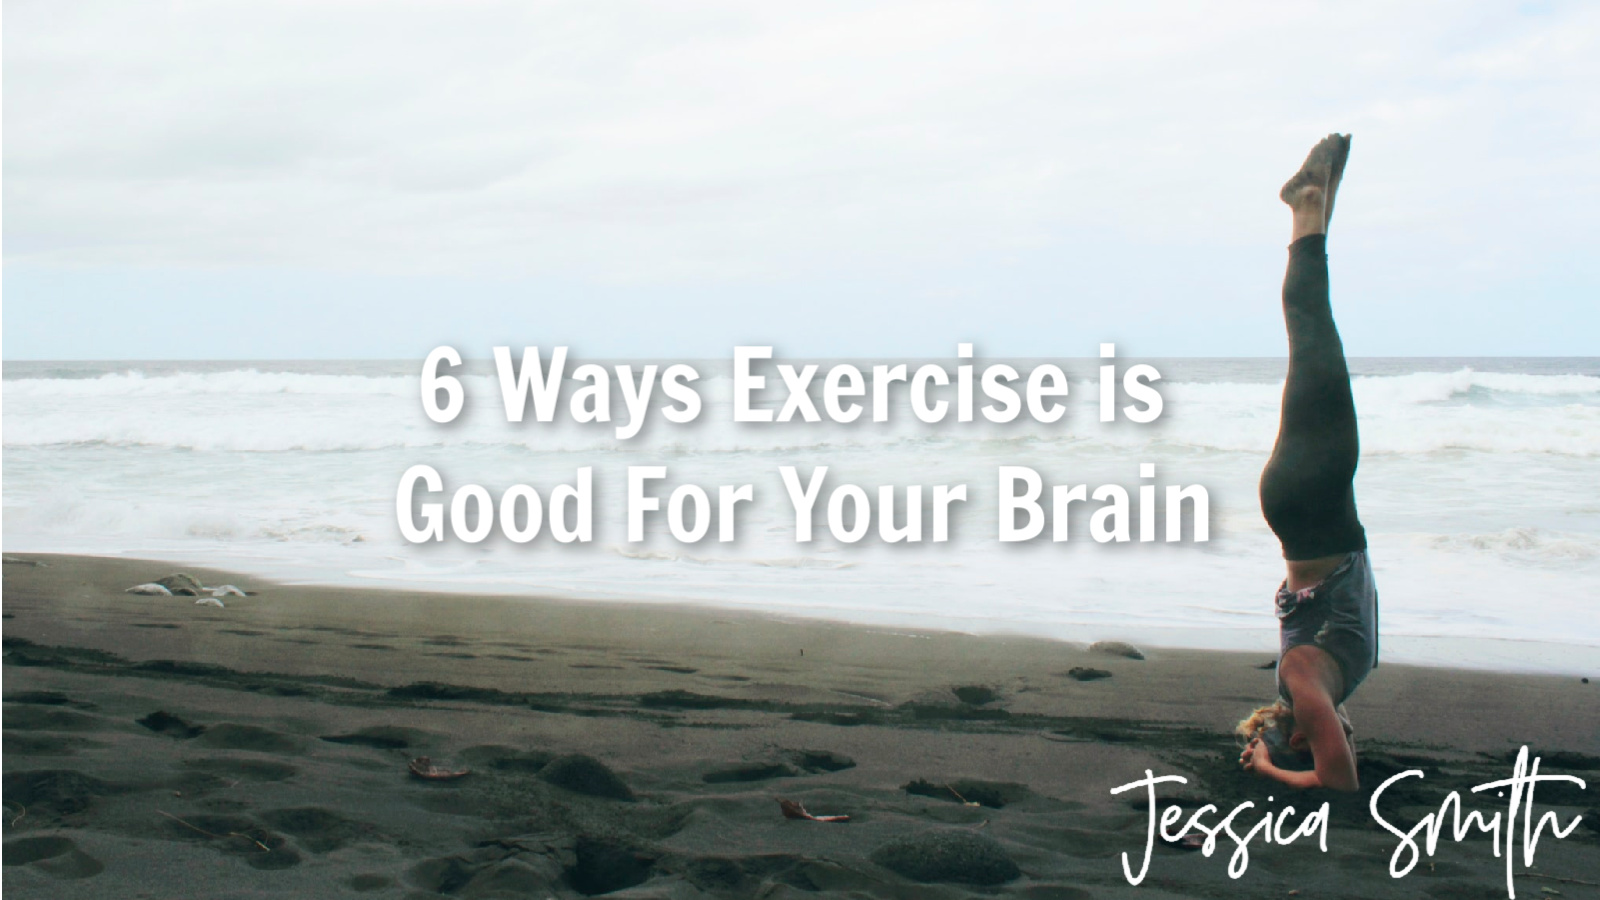 6 Ways Exercise is Good for Your Brain